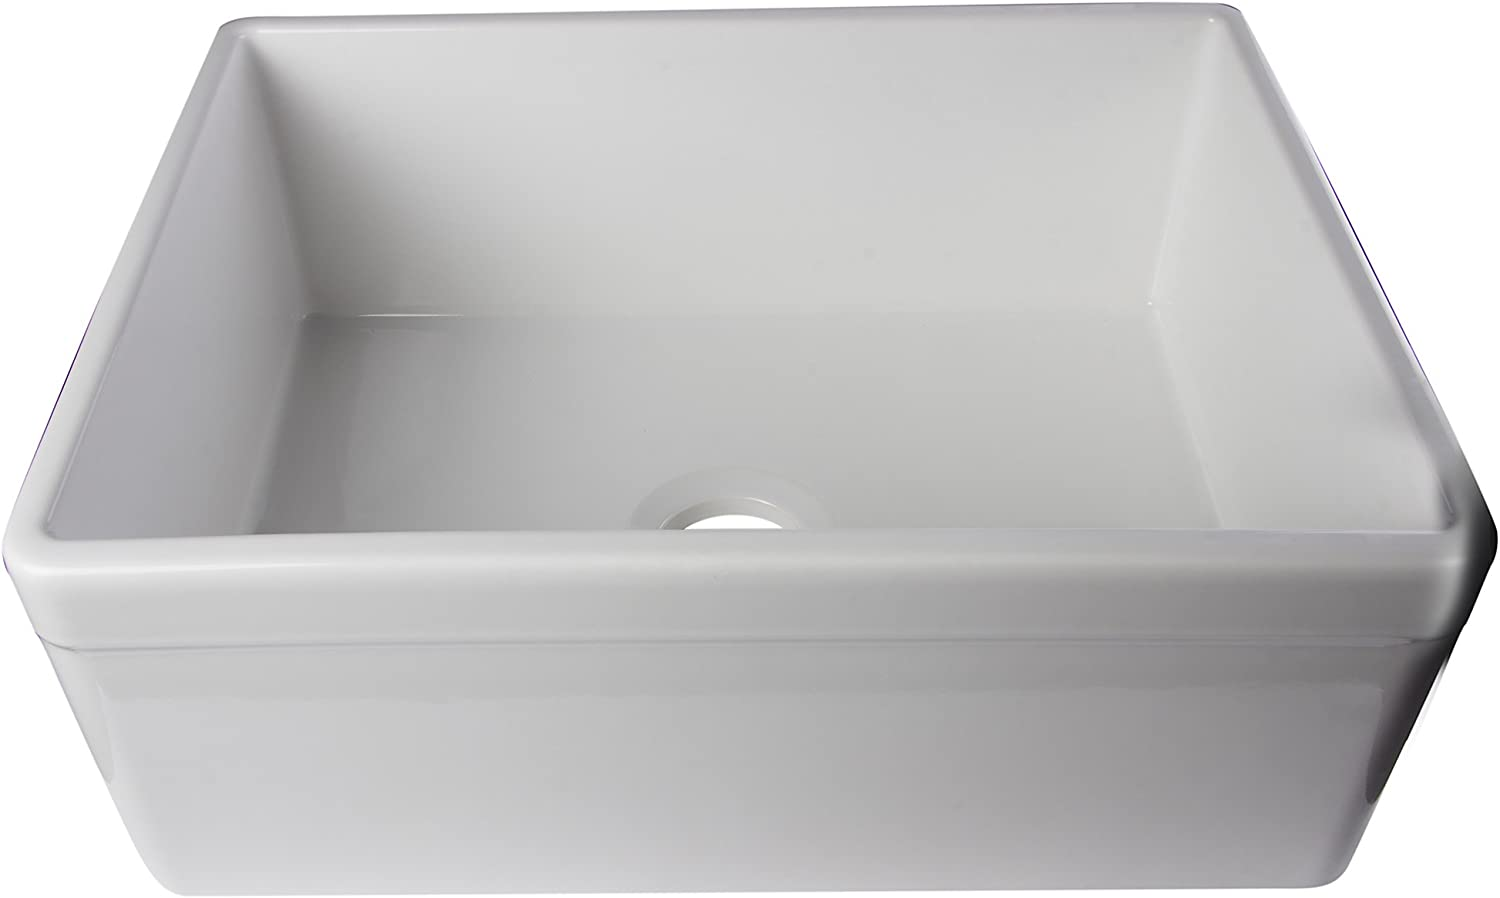 ALFI brand AB506-W 26-Inch Decorative Lip Single Bowl Fireclay Farmhouse Kitchen Sink, White